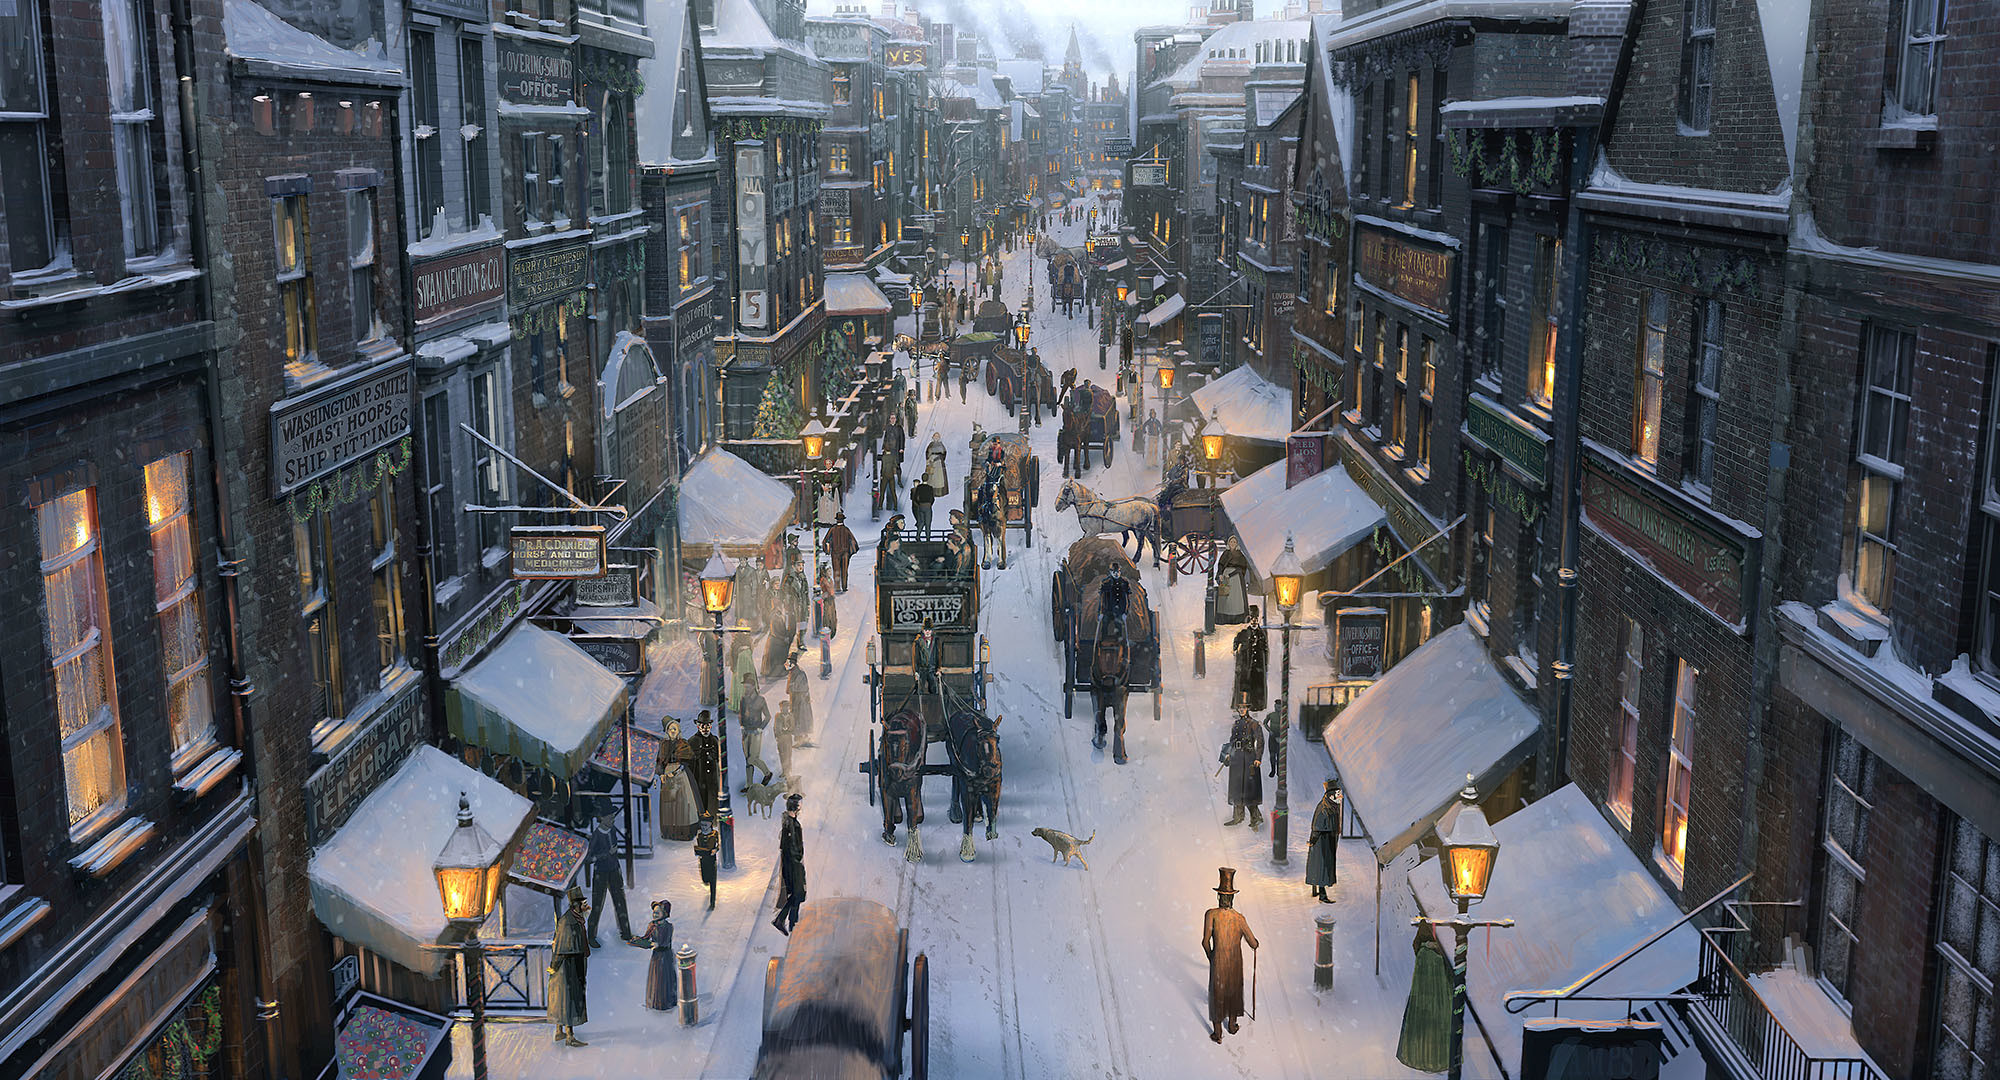 Art city snow winter street carts horses people christmas wallpaper |  | 162654 | WallpaperUP